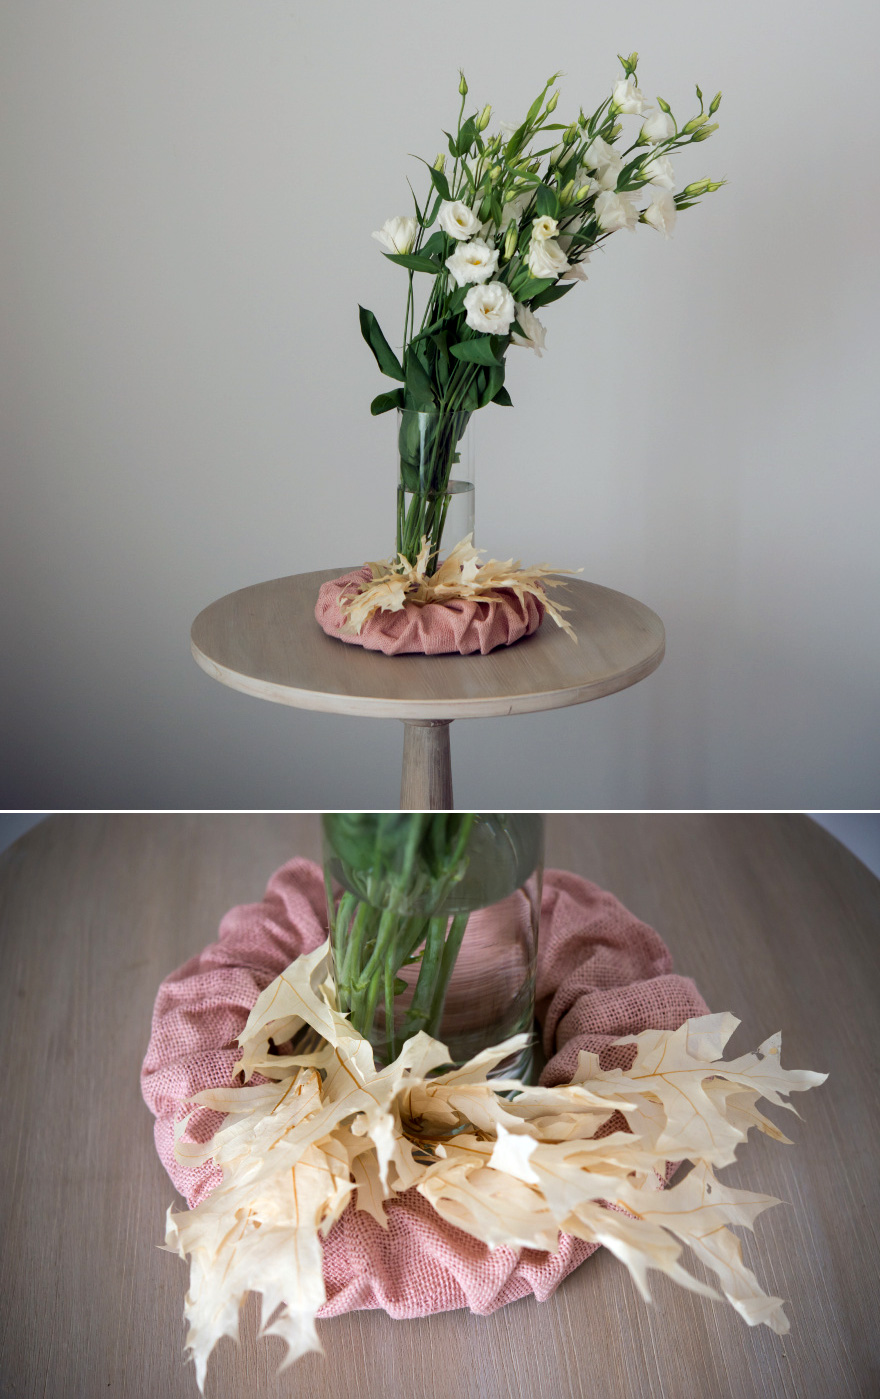 Burlap Wreath Wedding Centrepiece Idea - Pink burlap wreath as a beautiful wedding table centrepiece | Confetti.co.uk